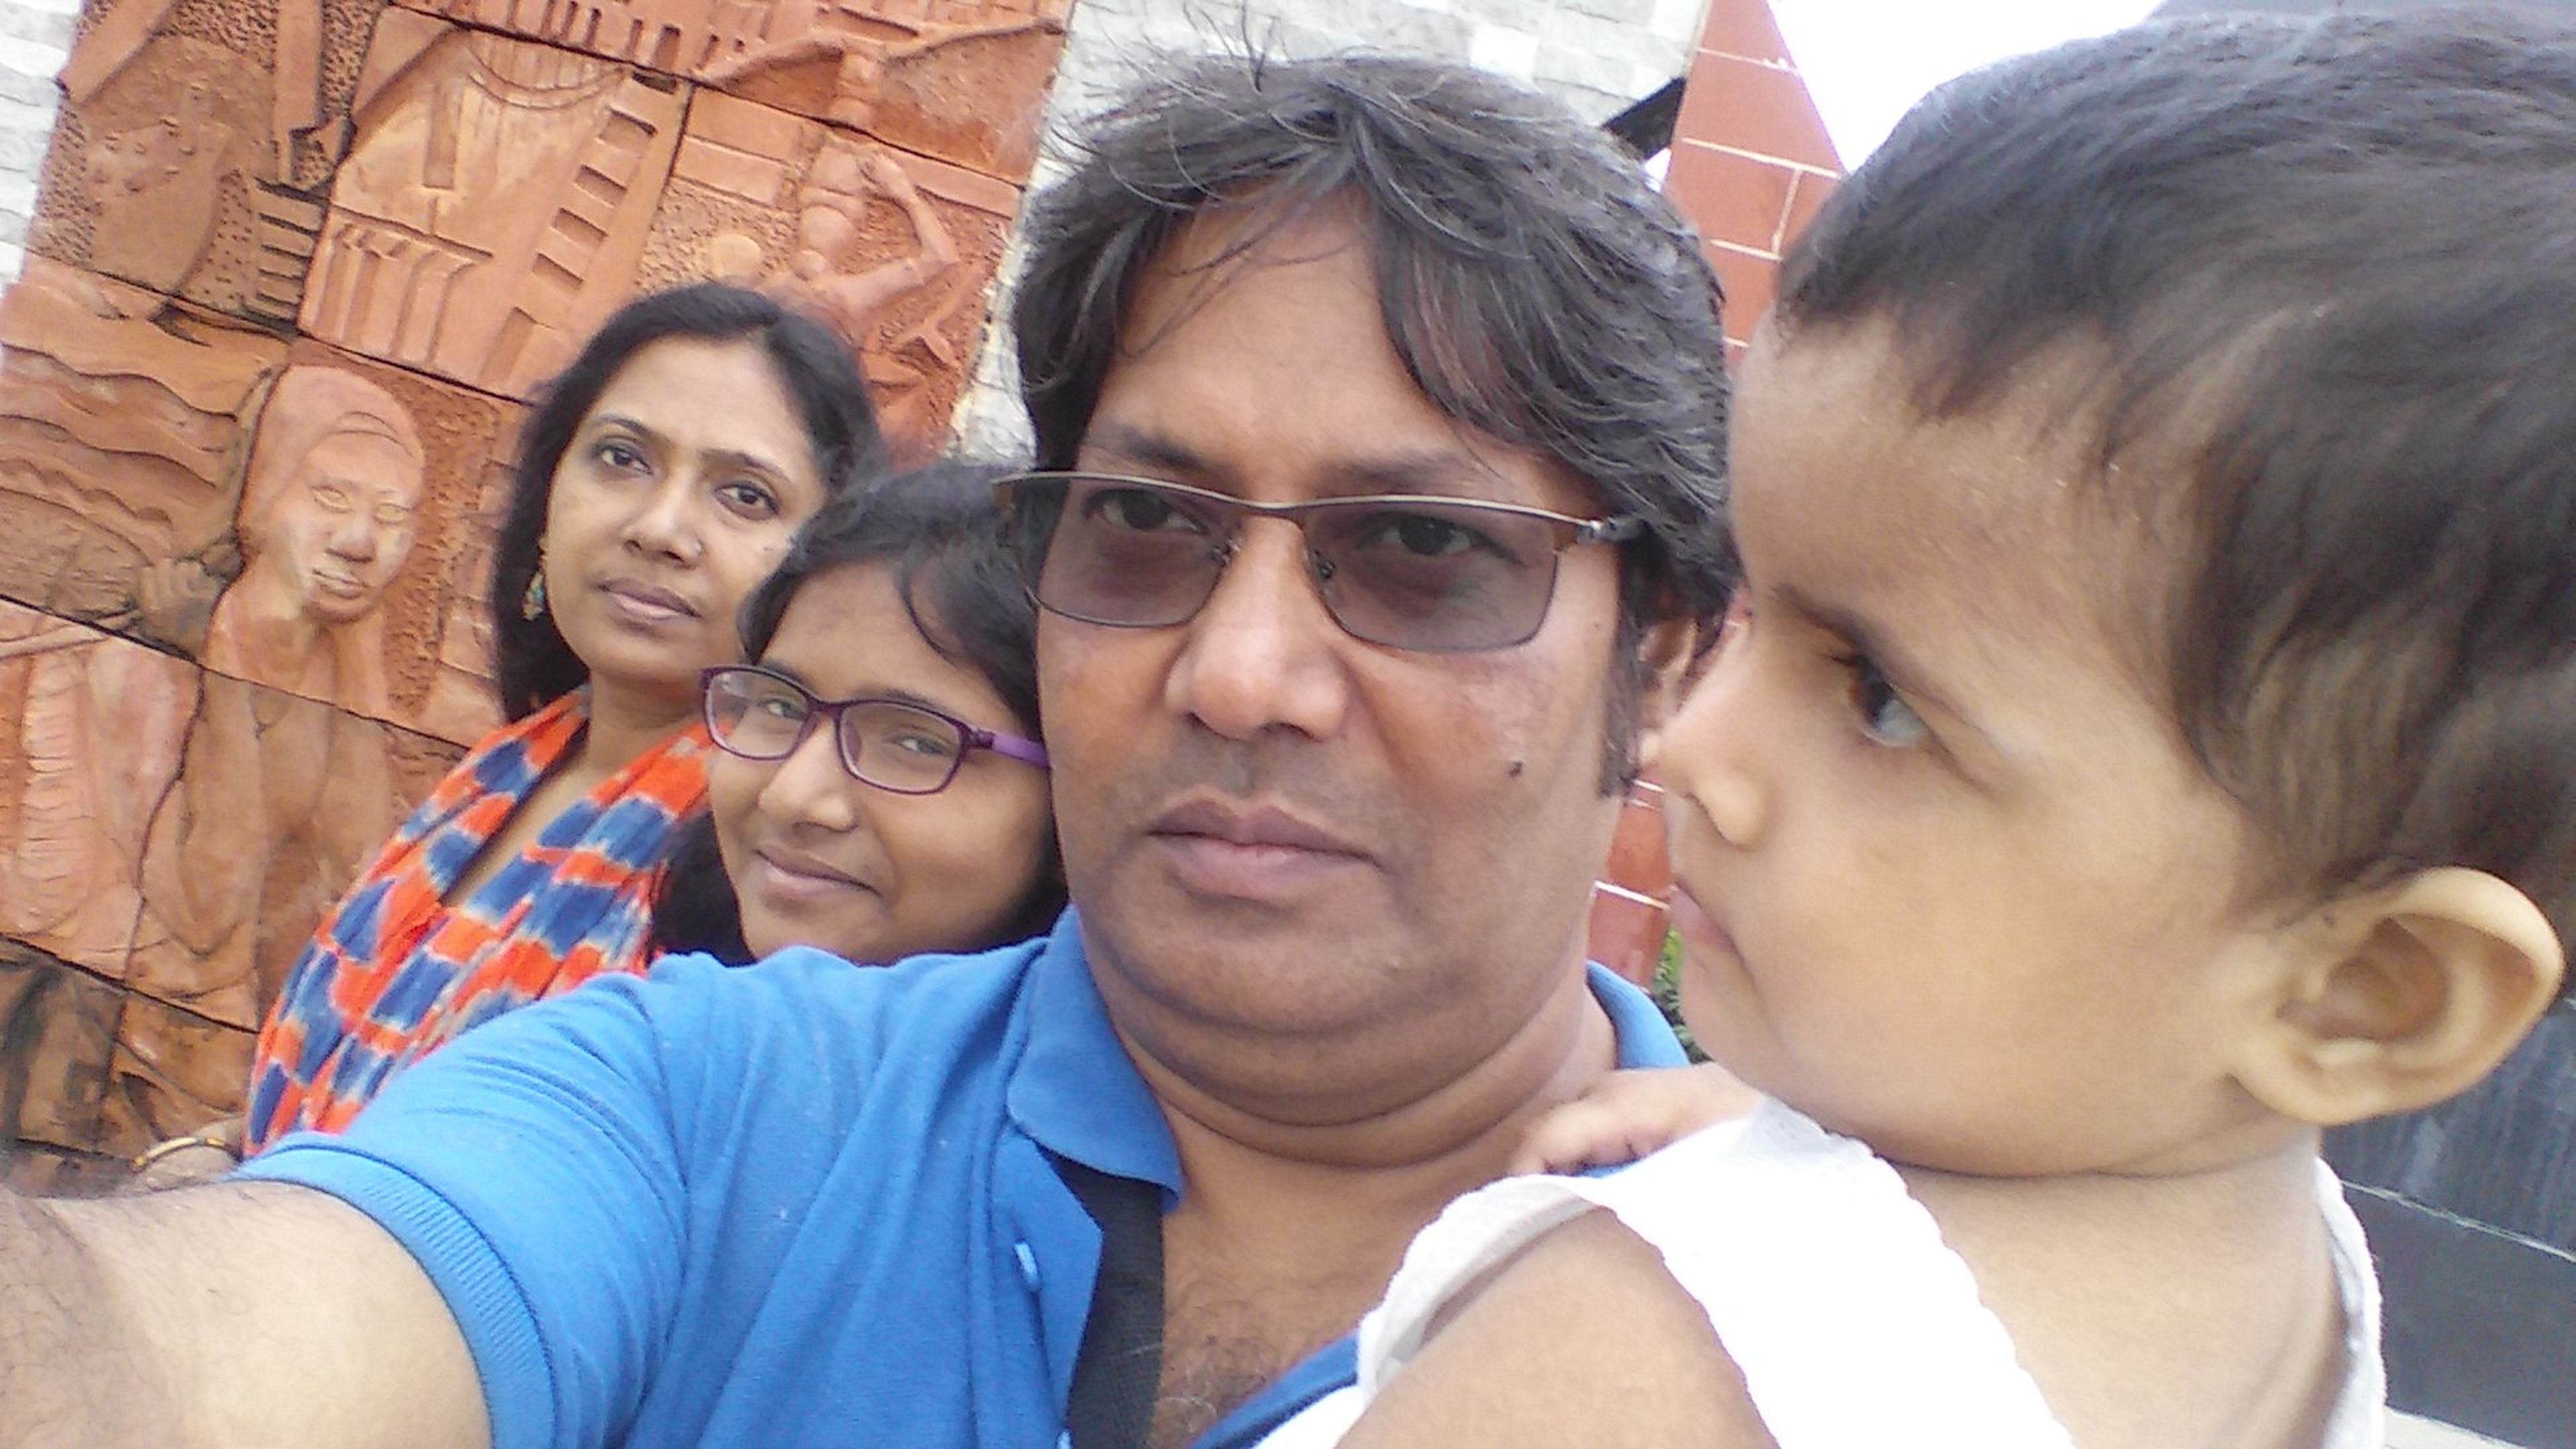 togetherness, leisure activity, lifestyles, bonding, friendship, love, headshot, young adult, front view, looking at camera, person, focus on foreground, friend